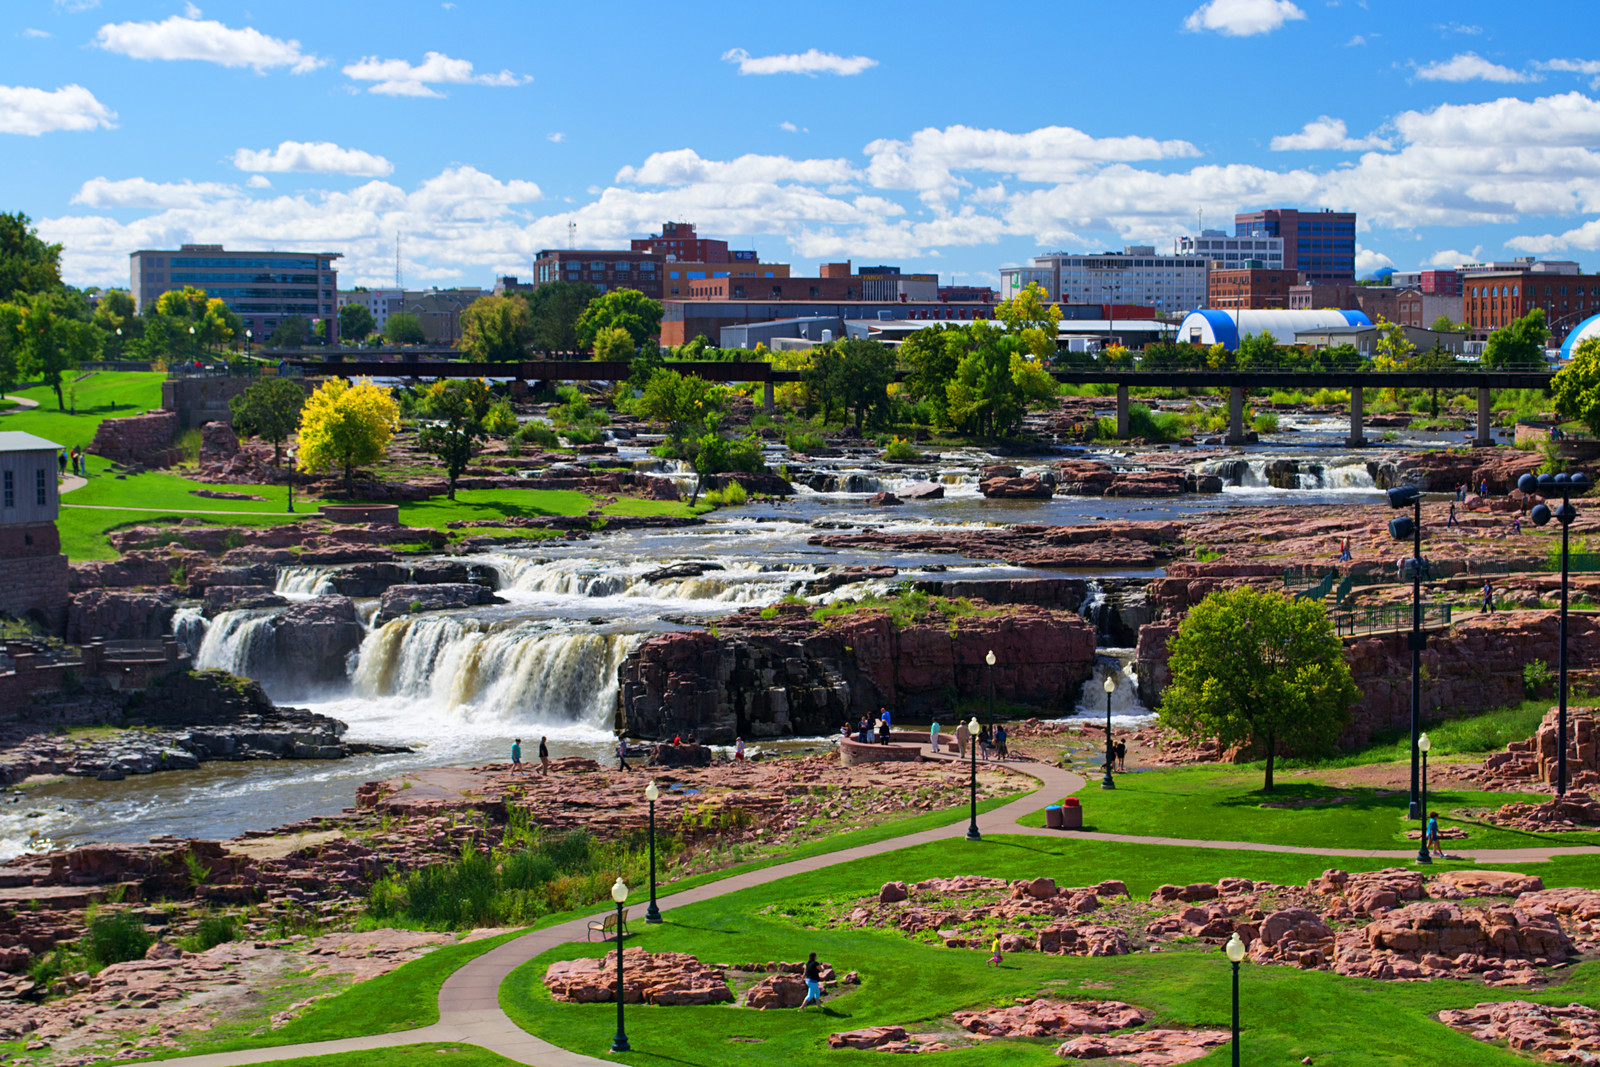 Sioux Falls at Falls park with walkways, green grass, and street lights lining the paths, with the city in the backdrop with blue skies